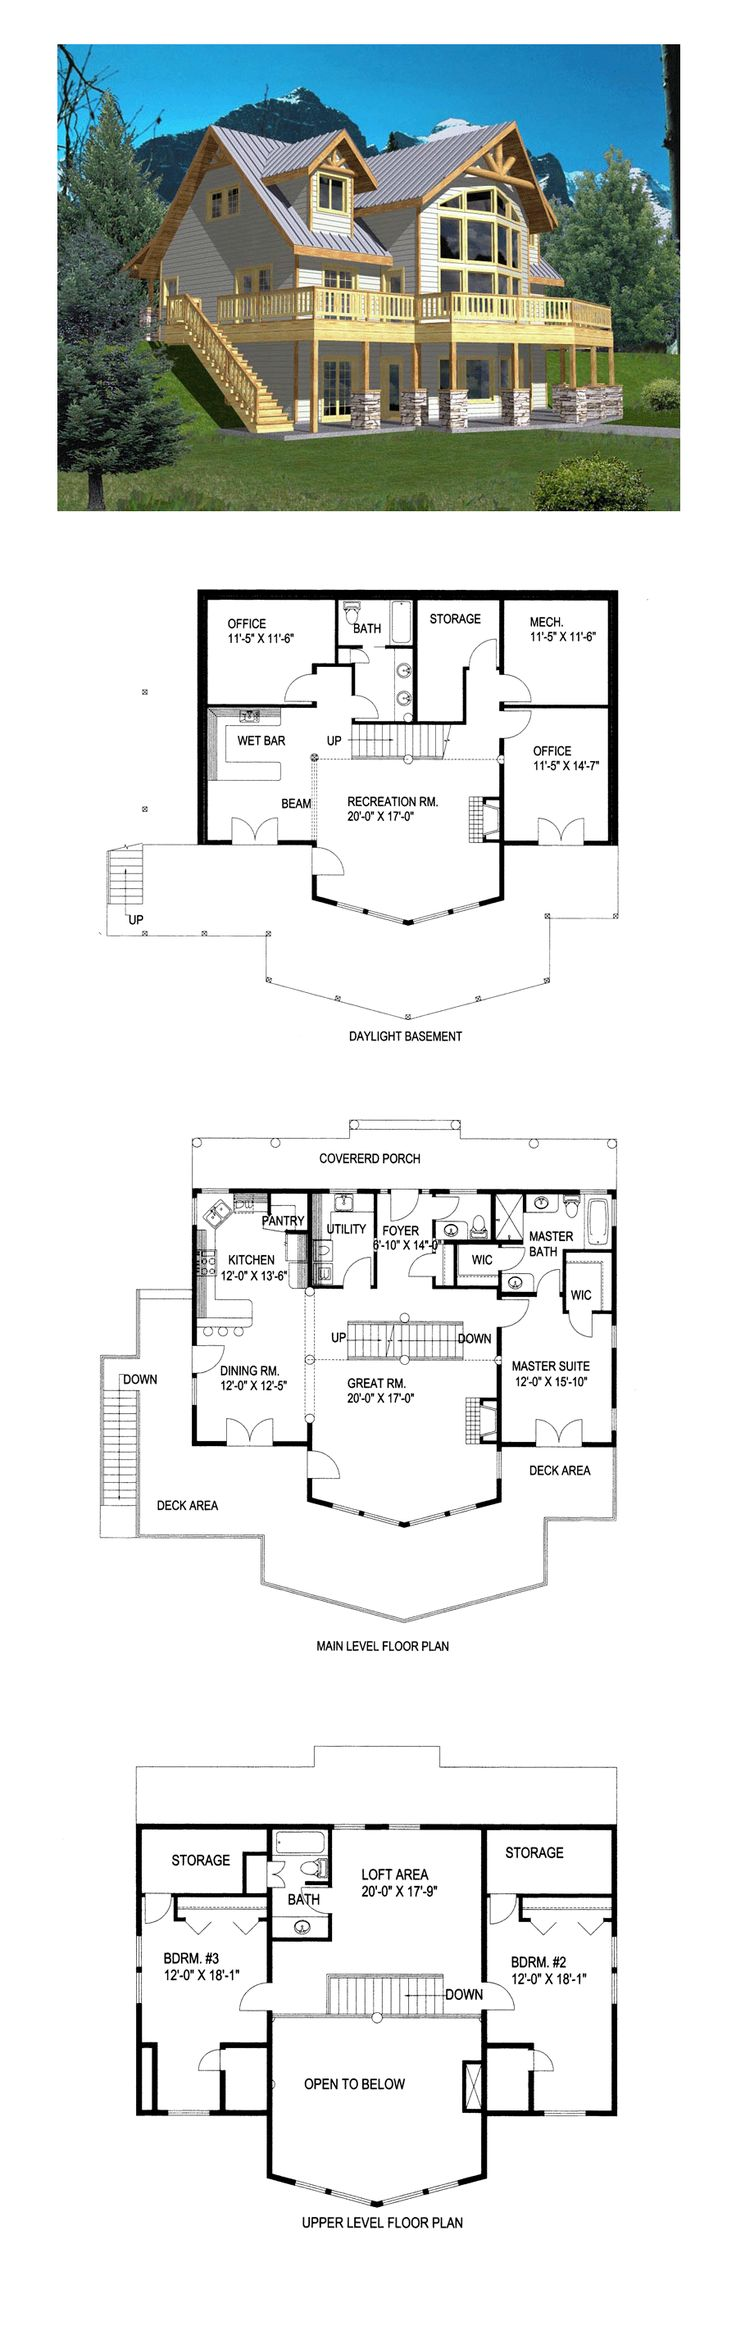 5 bedroom 3 bathroom house plans - Best 20 Sims3 House Ideas On Pinterest Sims House Sims 3 Houses Plans And Sims 4 Houses Layout